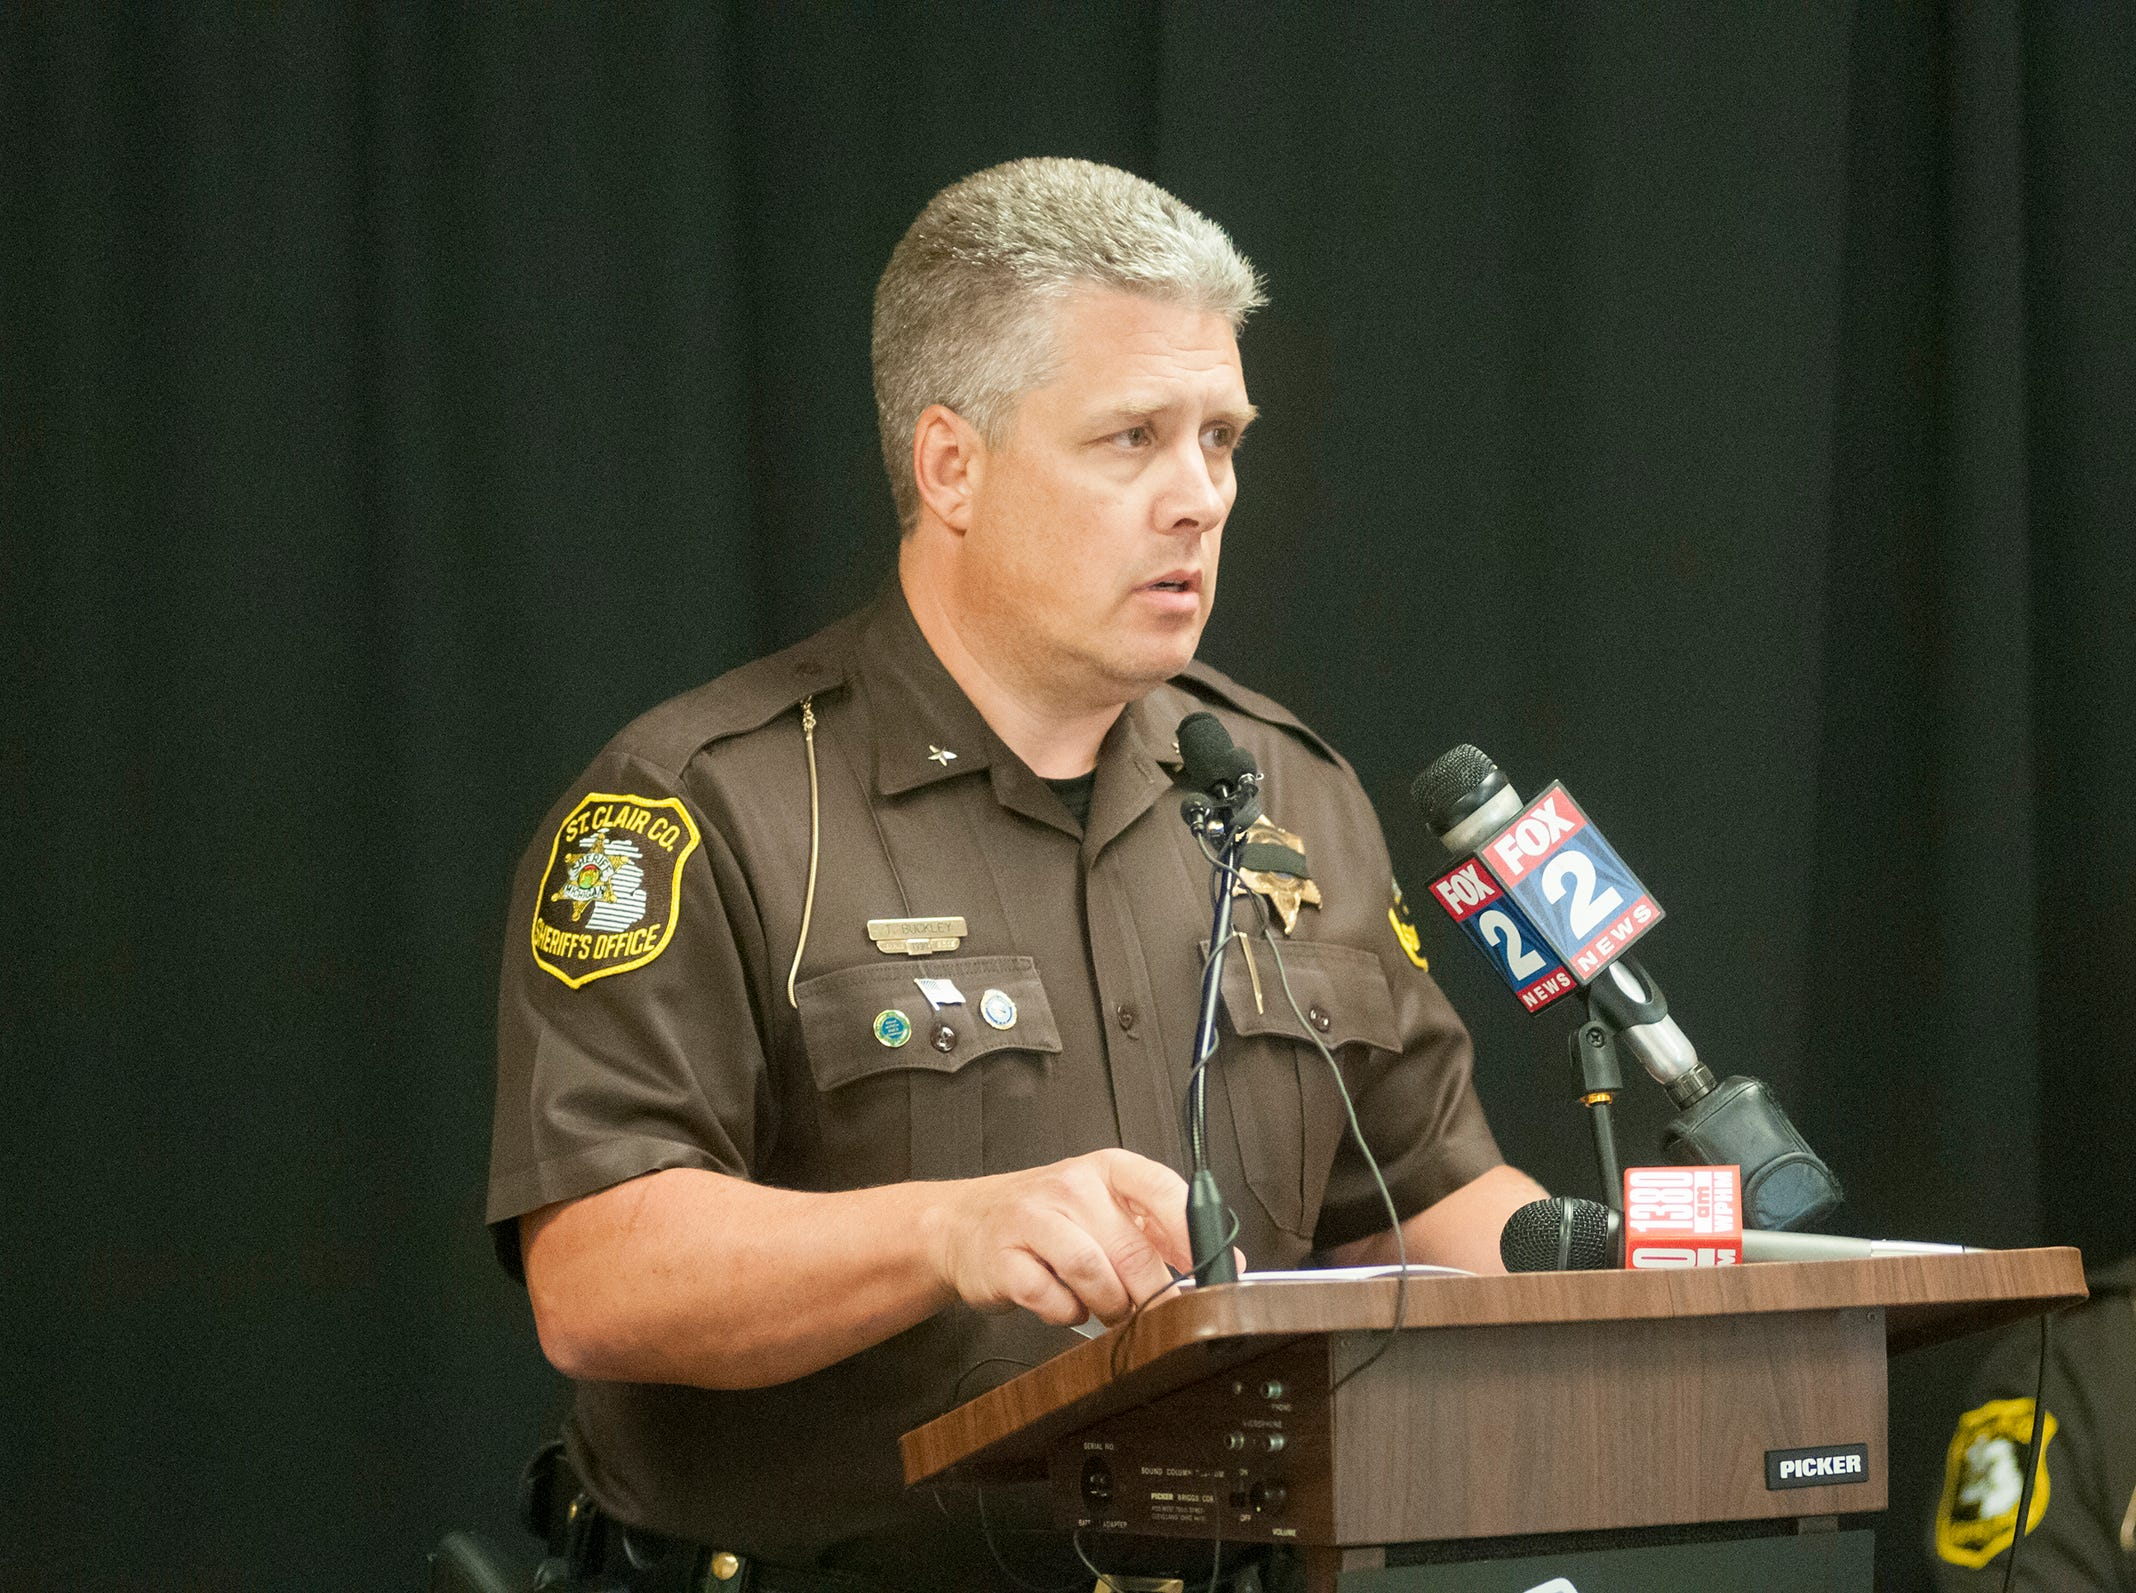 Undersheriff Tom Buckley retiring at the end of the month